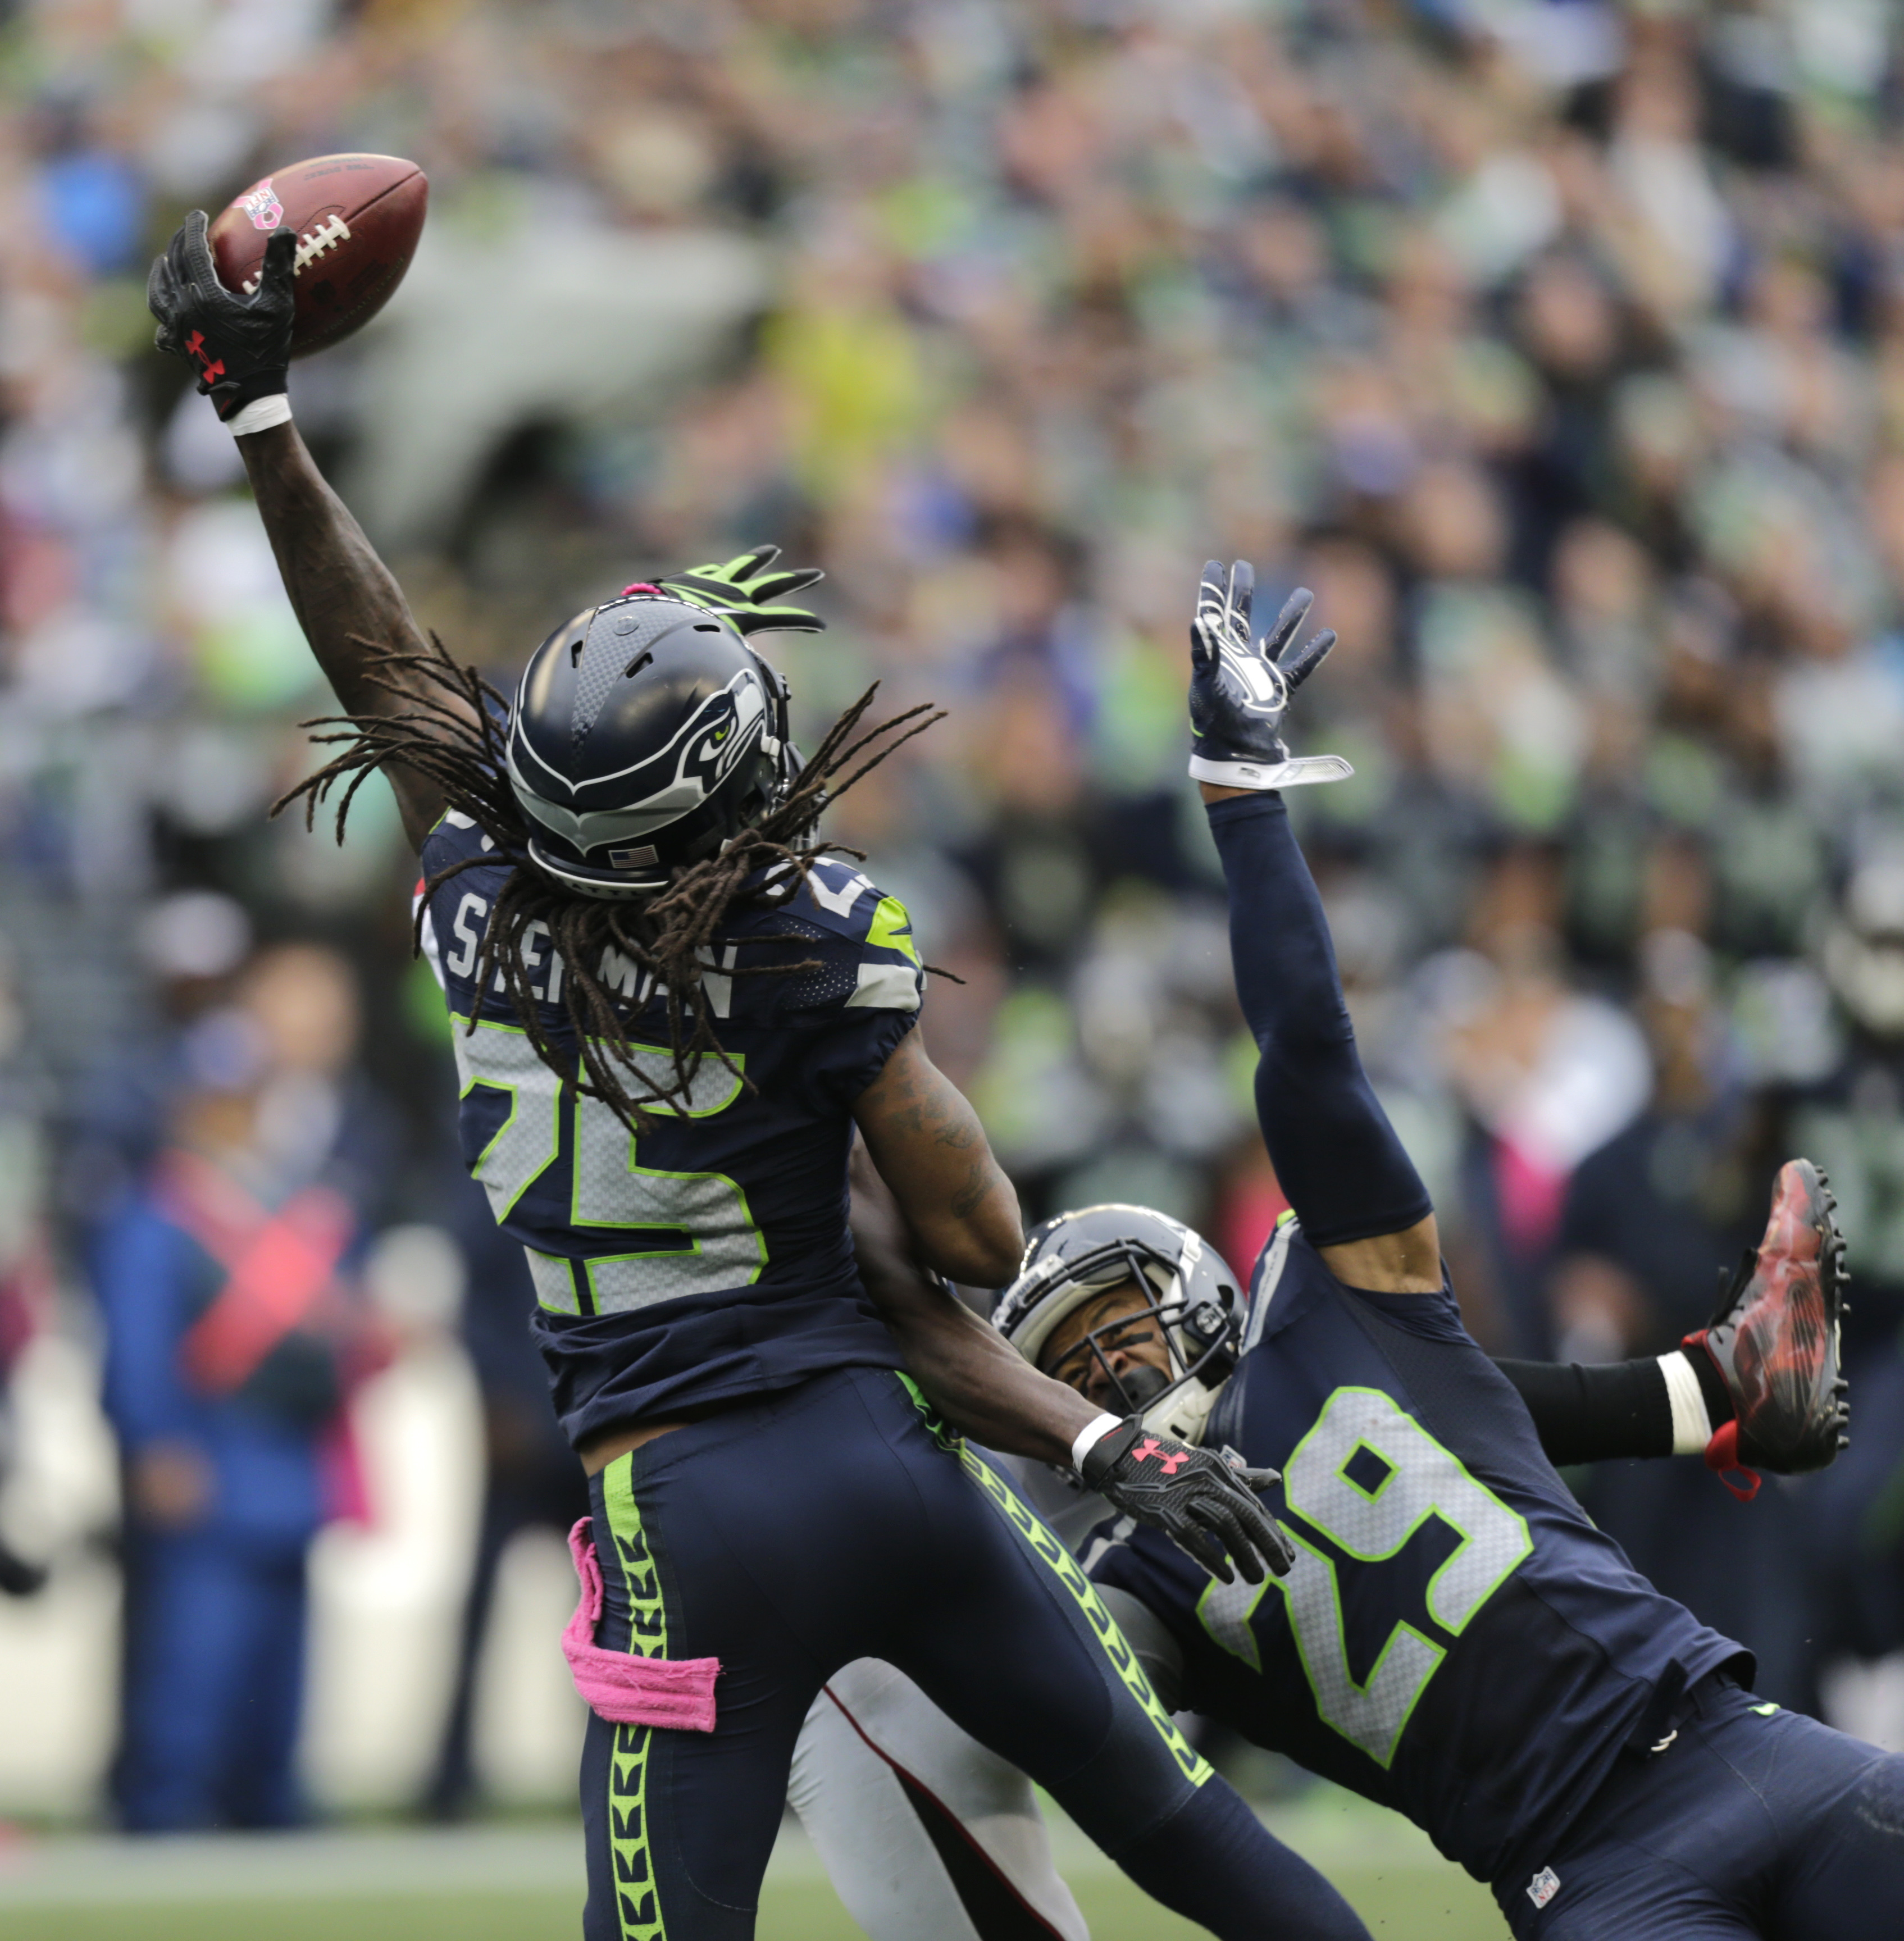 SEATTLE (AP) — Once the Seattle Seahawks finished yelling at each other a445e98fb